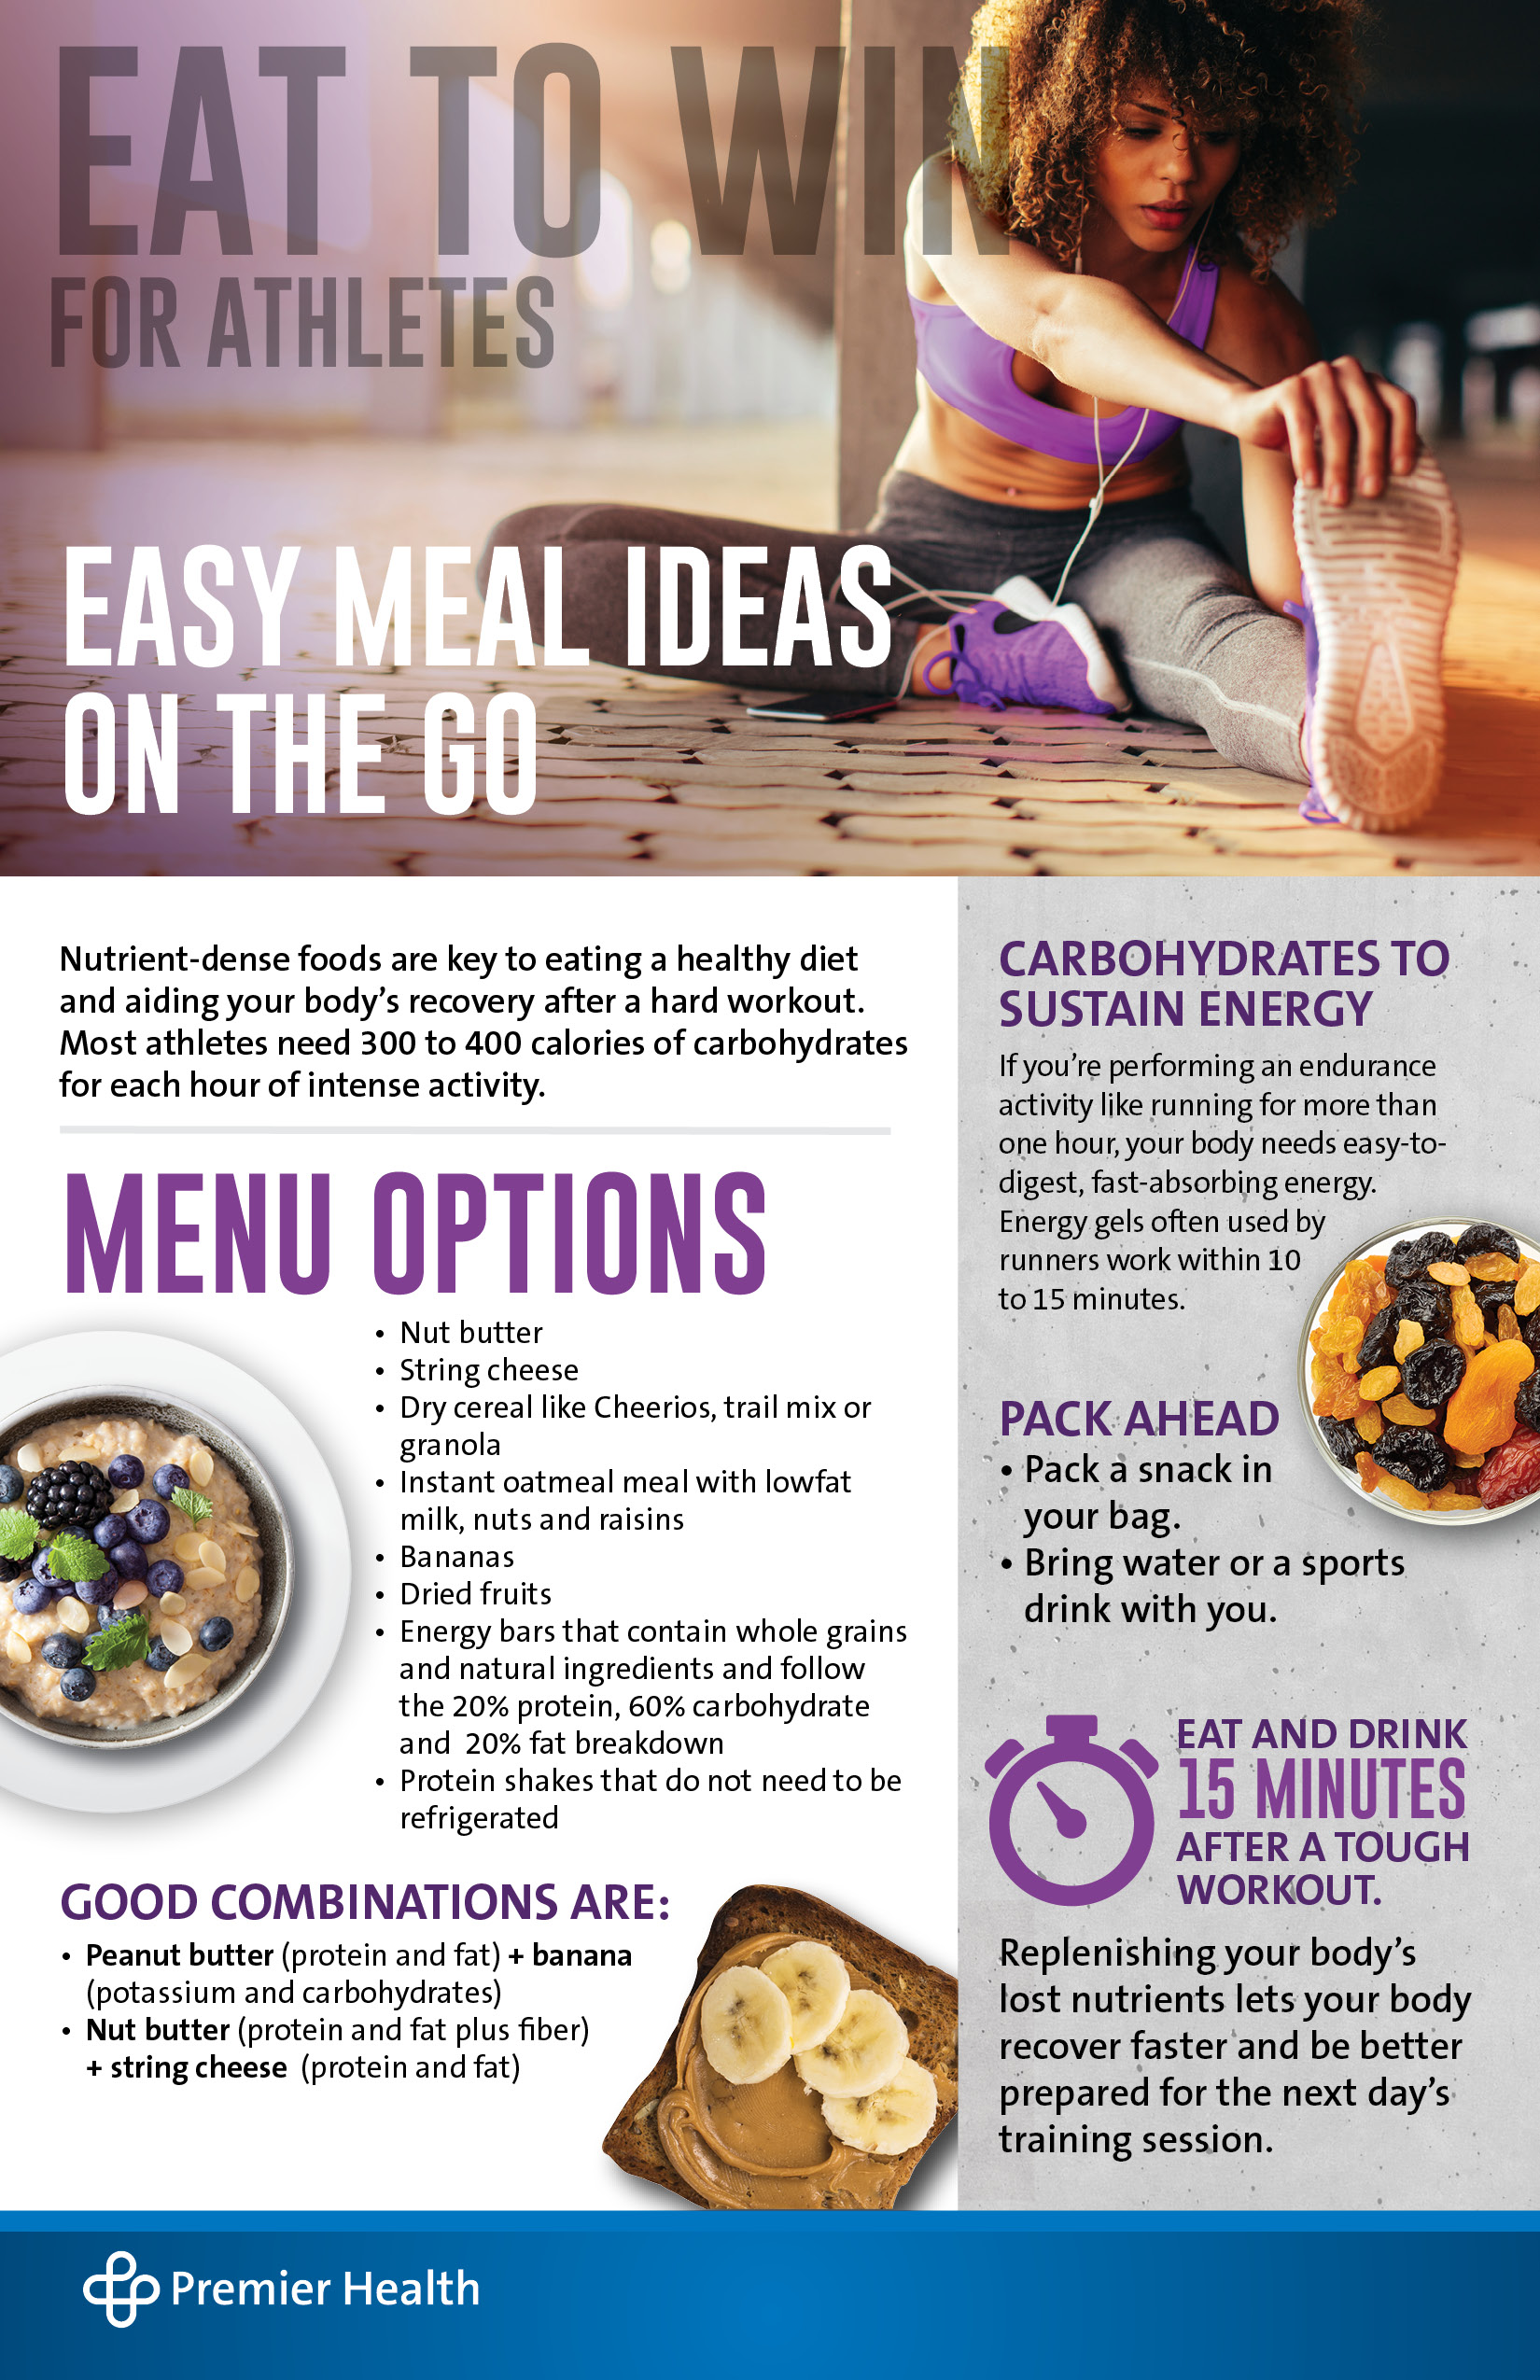 Eat to Win Meal Ideas Infographic